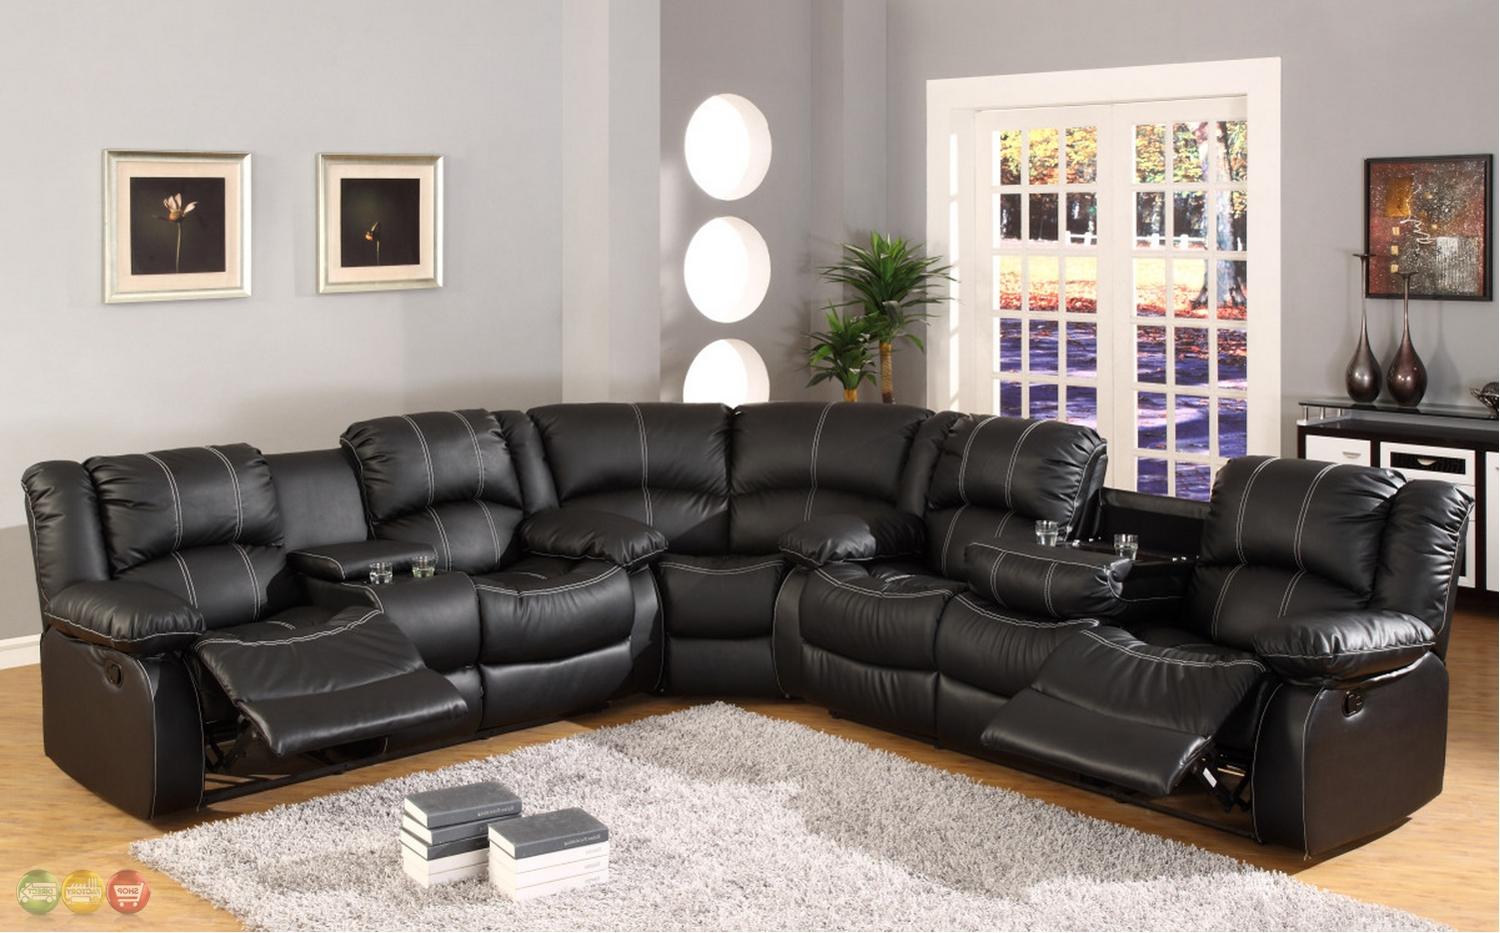 Most Recently Released Black Faux Leather Reclining Motion Sectional Sofa W/ Storage Regarding Sectional Sofas With Consoles (View 2 of 15)